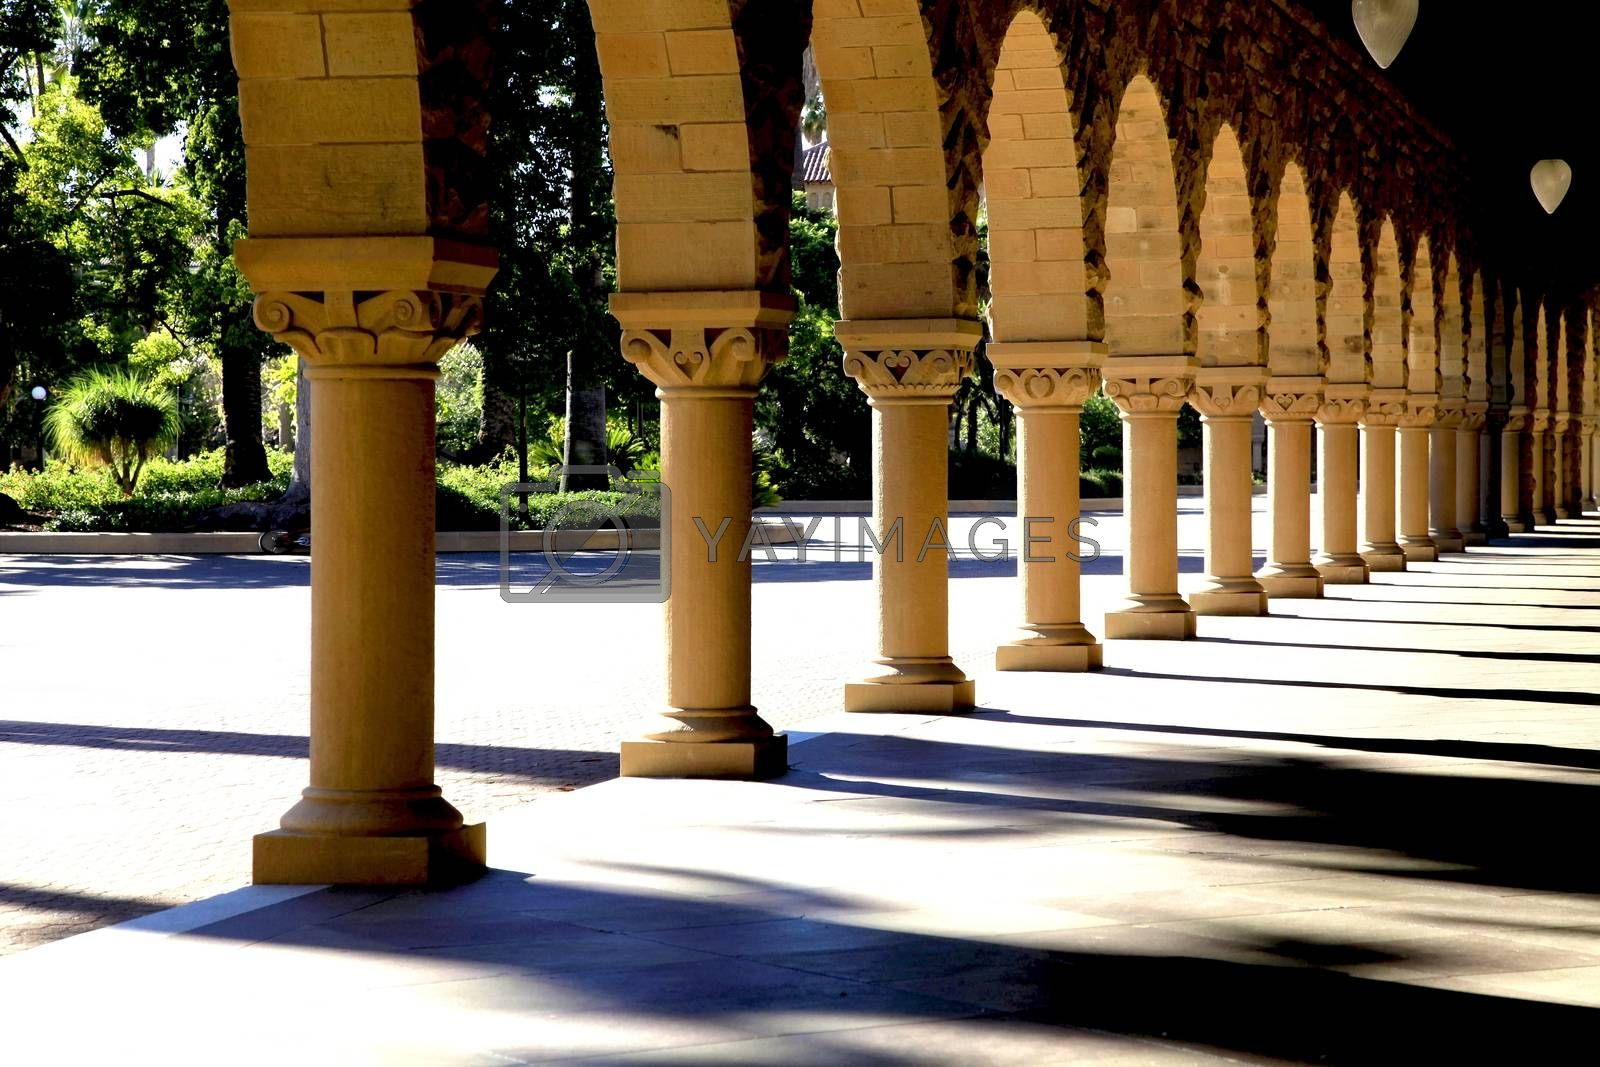 Covered arch way near the main Quad of Stanford University campus located in Palo Alto, California.